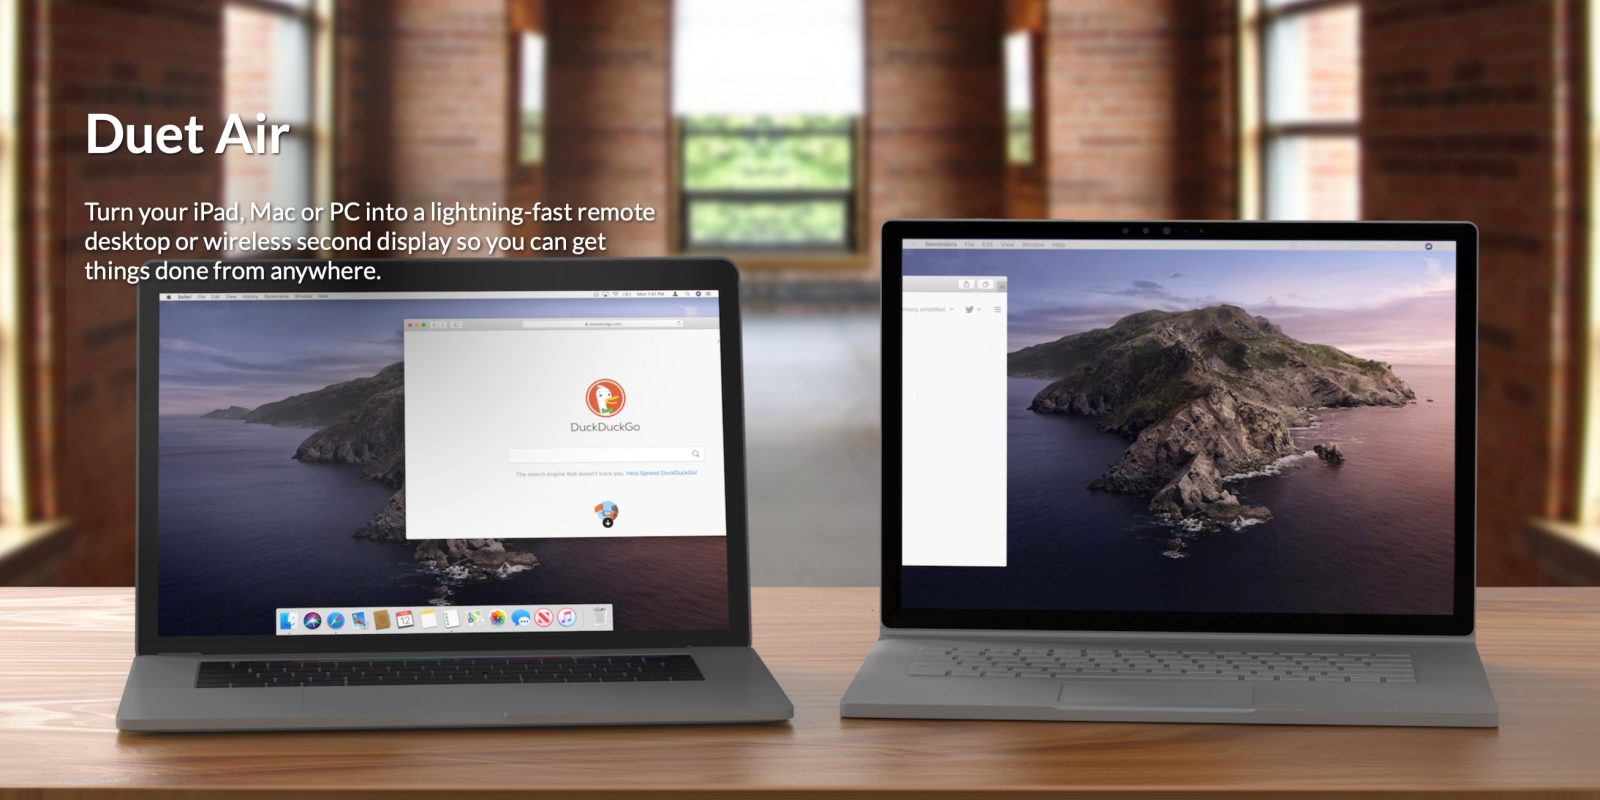 Duet Air update brings ability to use a Mac or PC as an external display